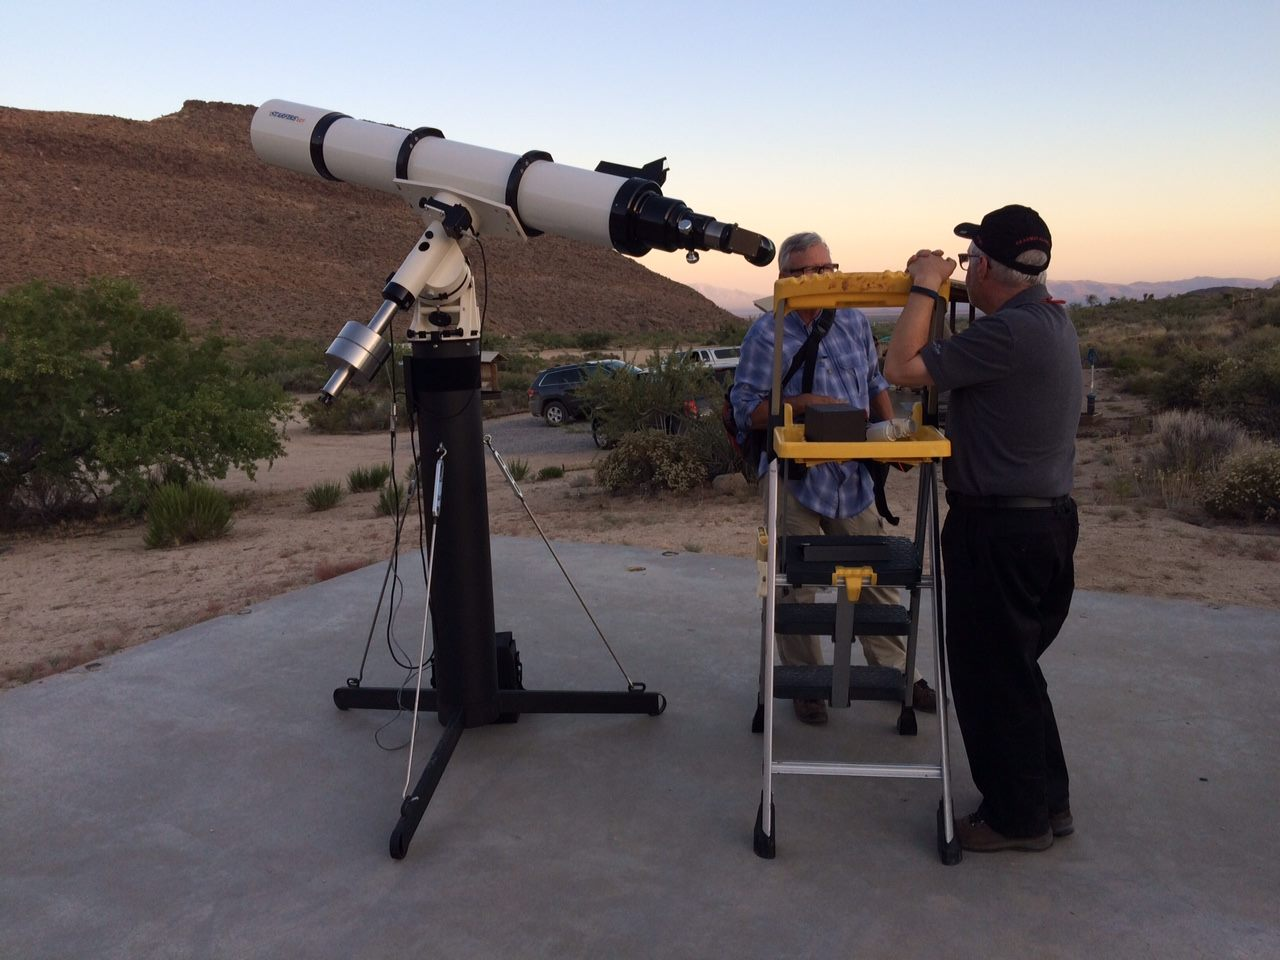 Astronomers setting up one of the telescopes and waiting for the setting sun to be replaced by millions of stars.